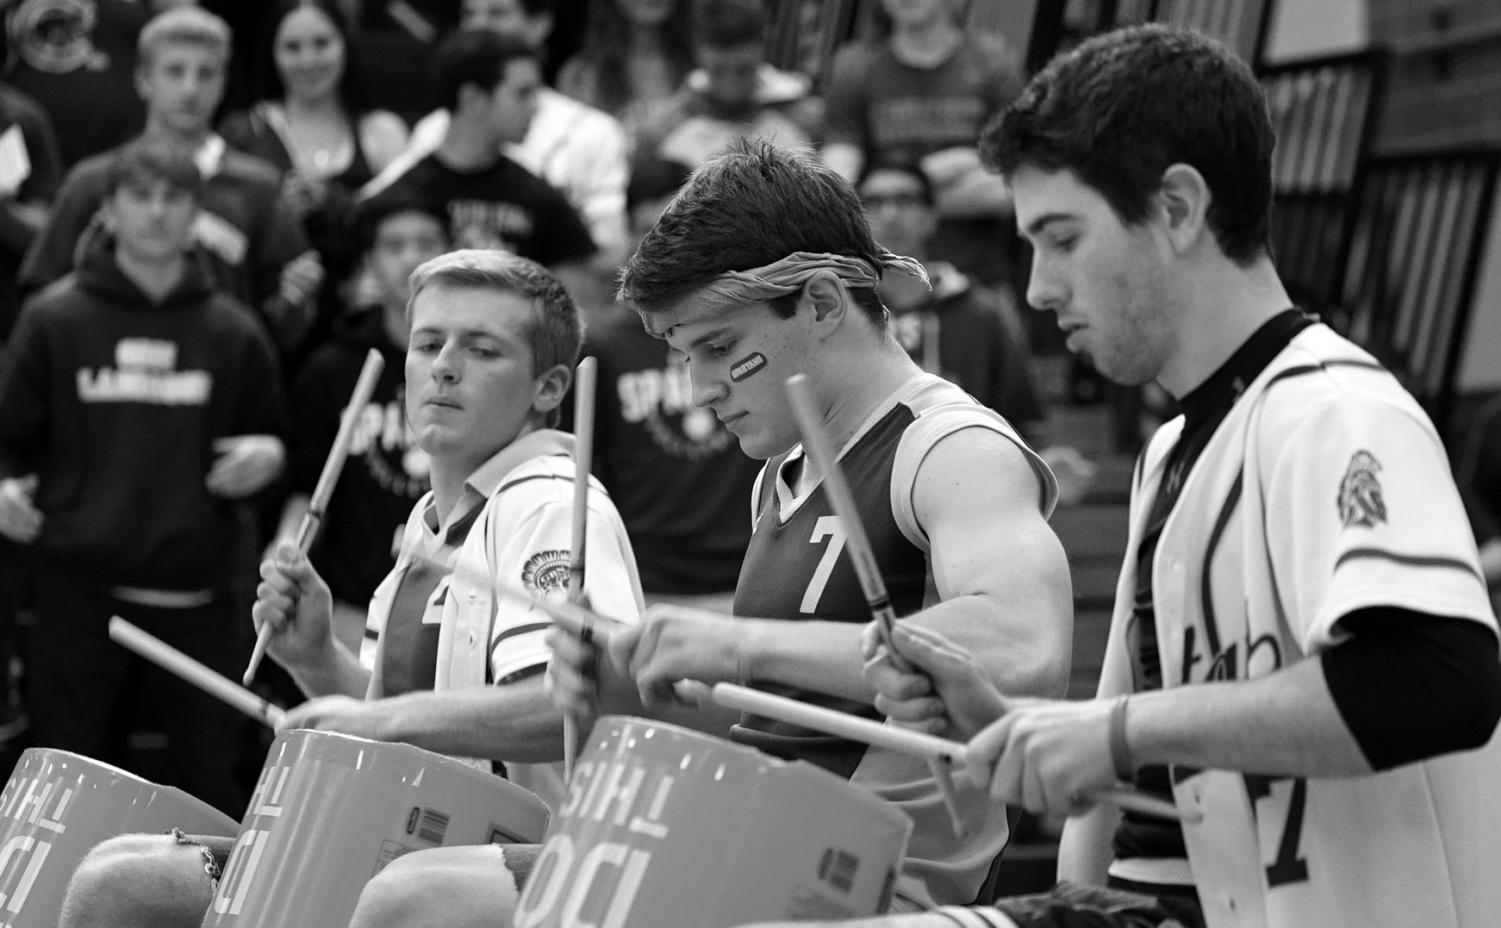 Seniors Daniel Spencer, Sam Heydt and Ben Harkey (left to right) play at their last performance together during the 2018 Pride Assembly. The group has been performing together since eighth grade, and they have played in Glenbrook North assemblies and Variety Shows. Photo by Richard Chu